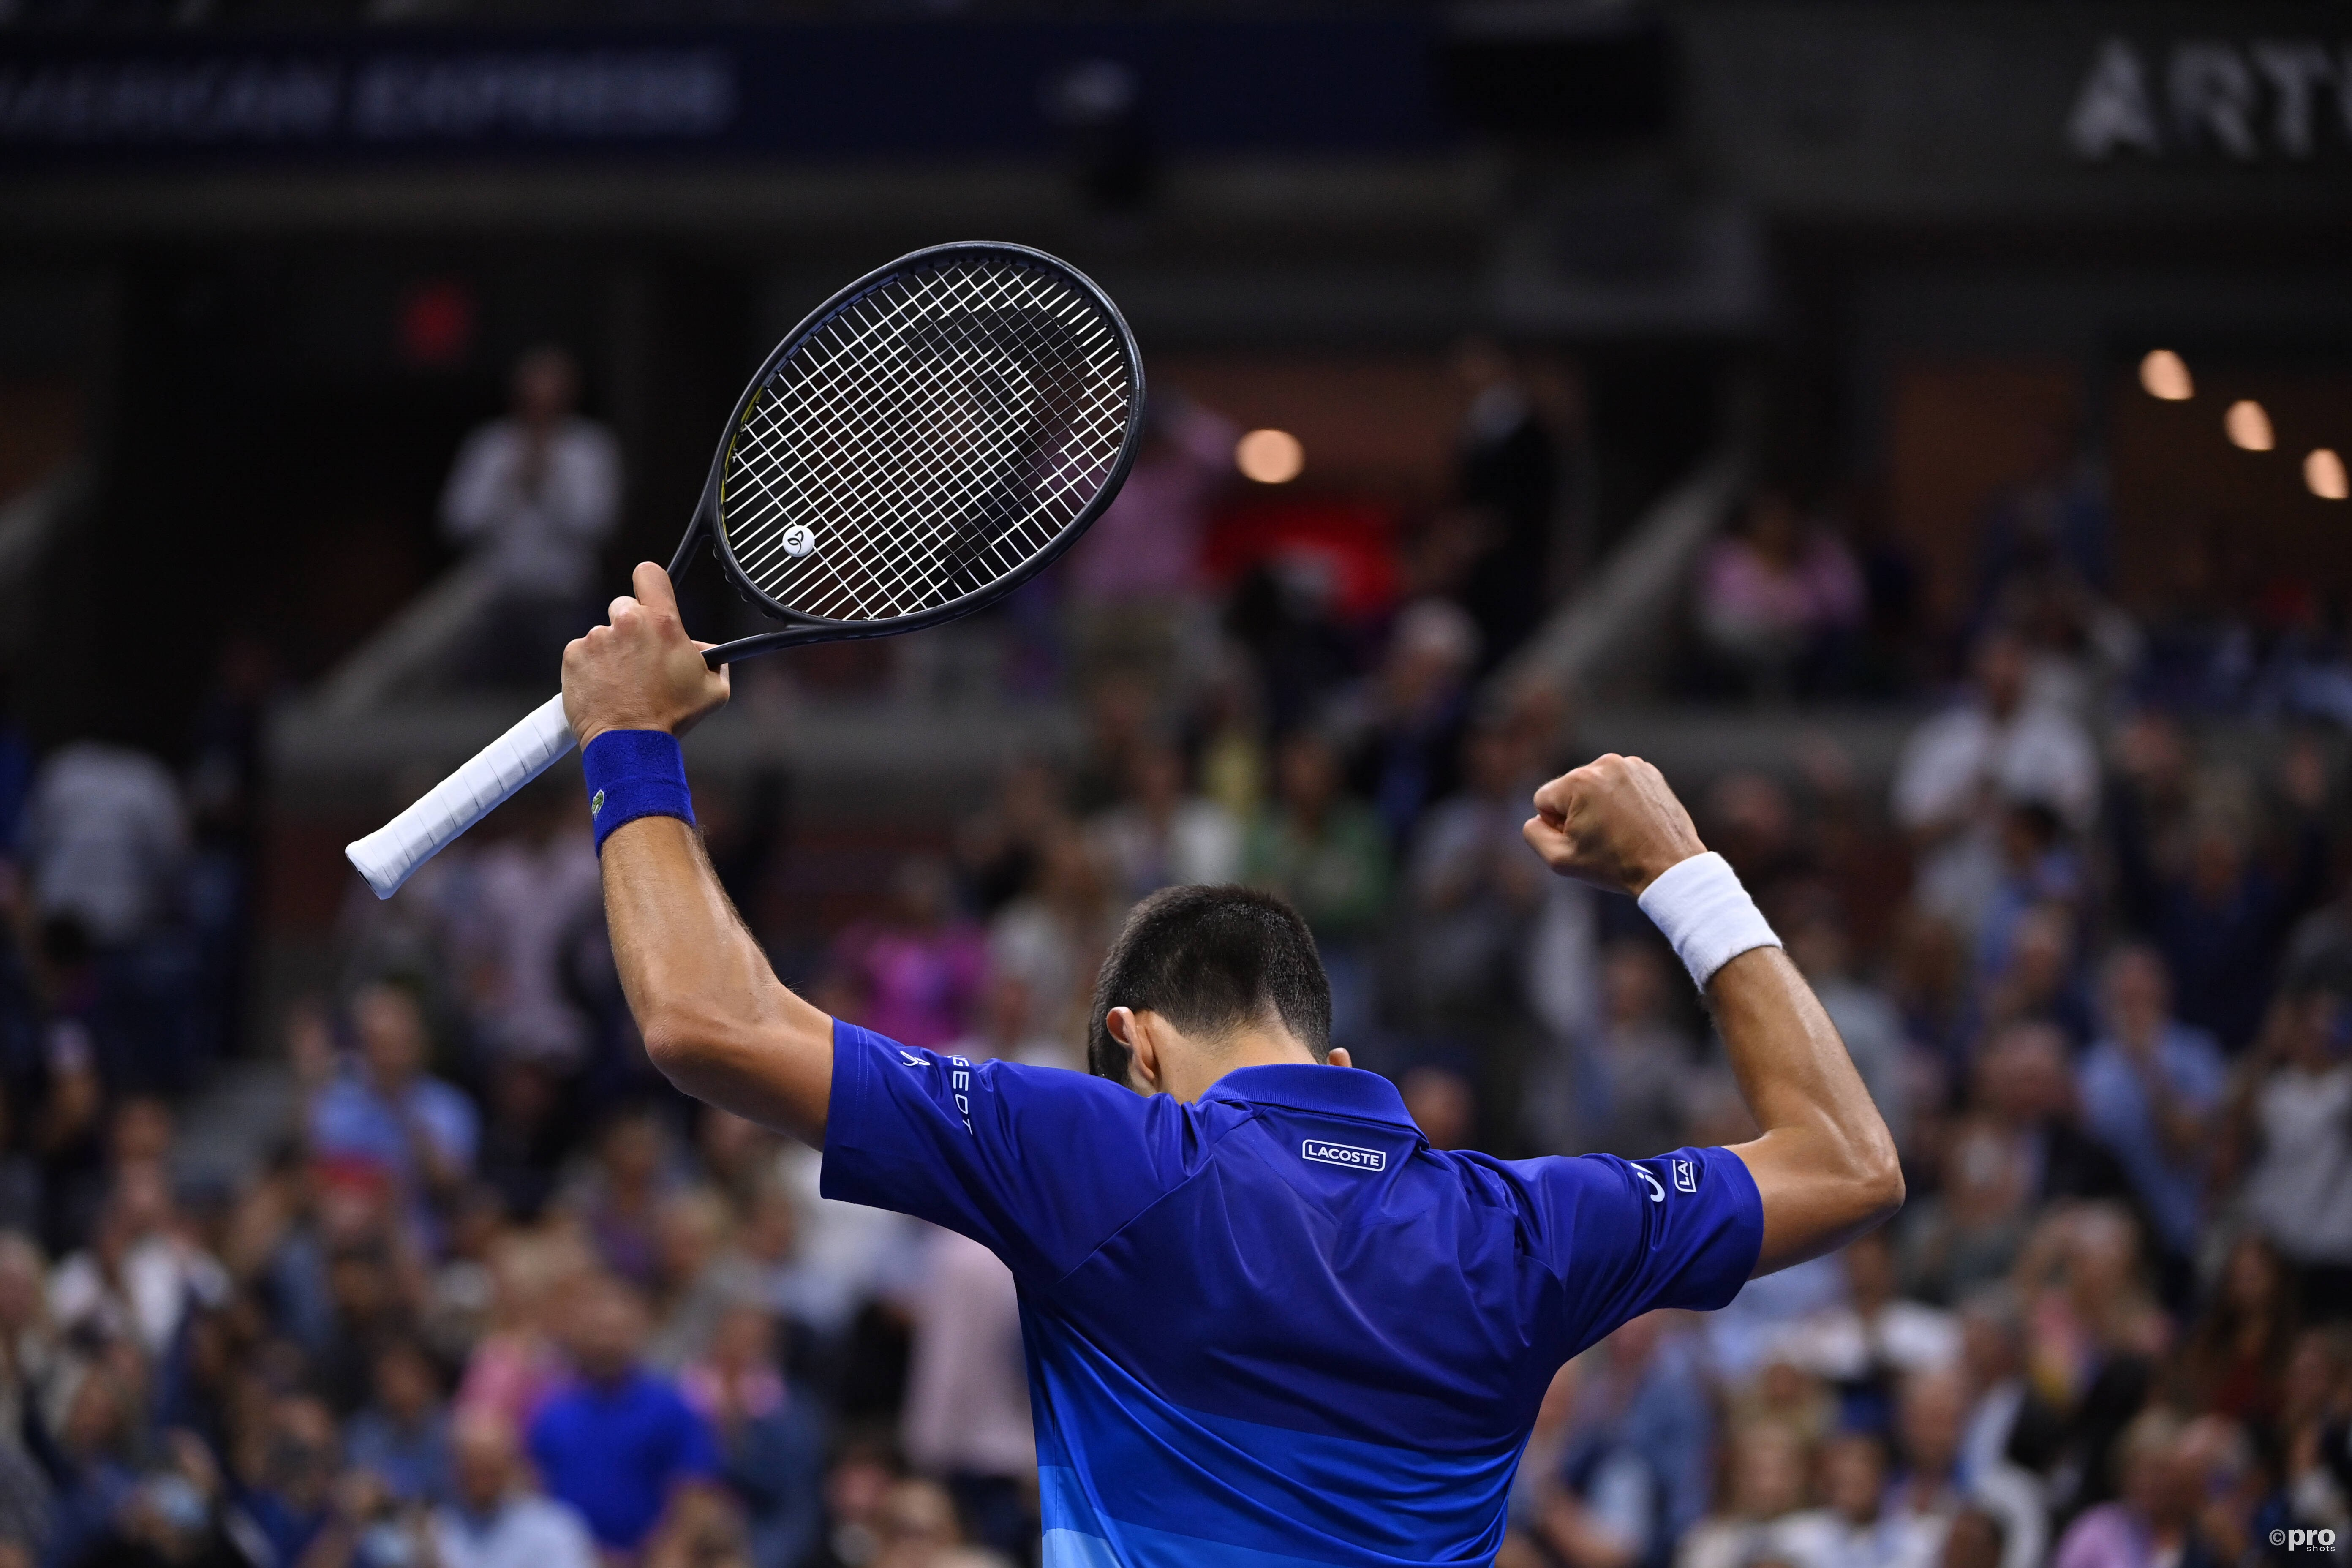 2021 Rolex Paris Masters ATP Prize Money with €3,151,145 on offer